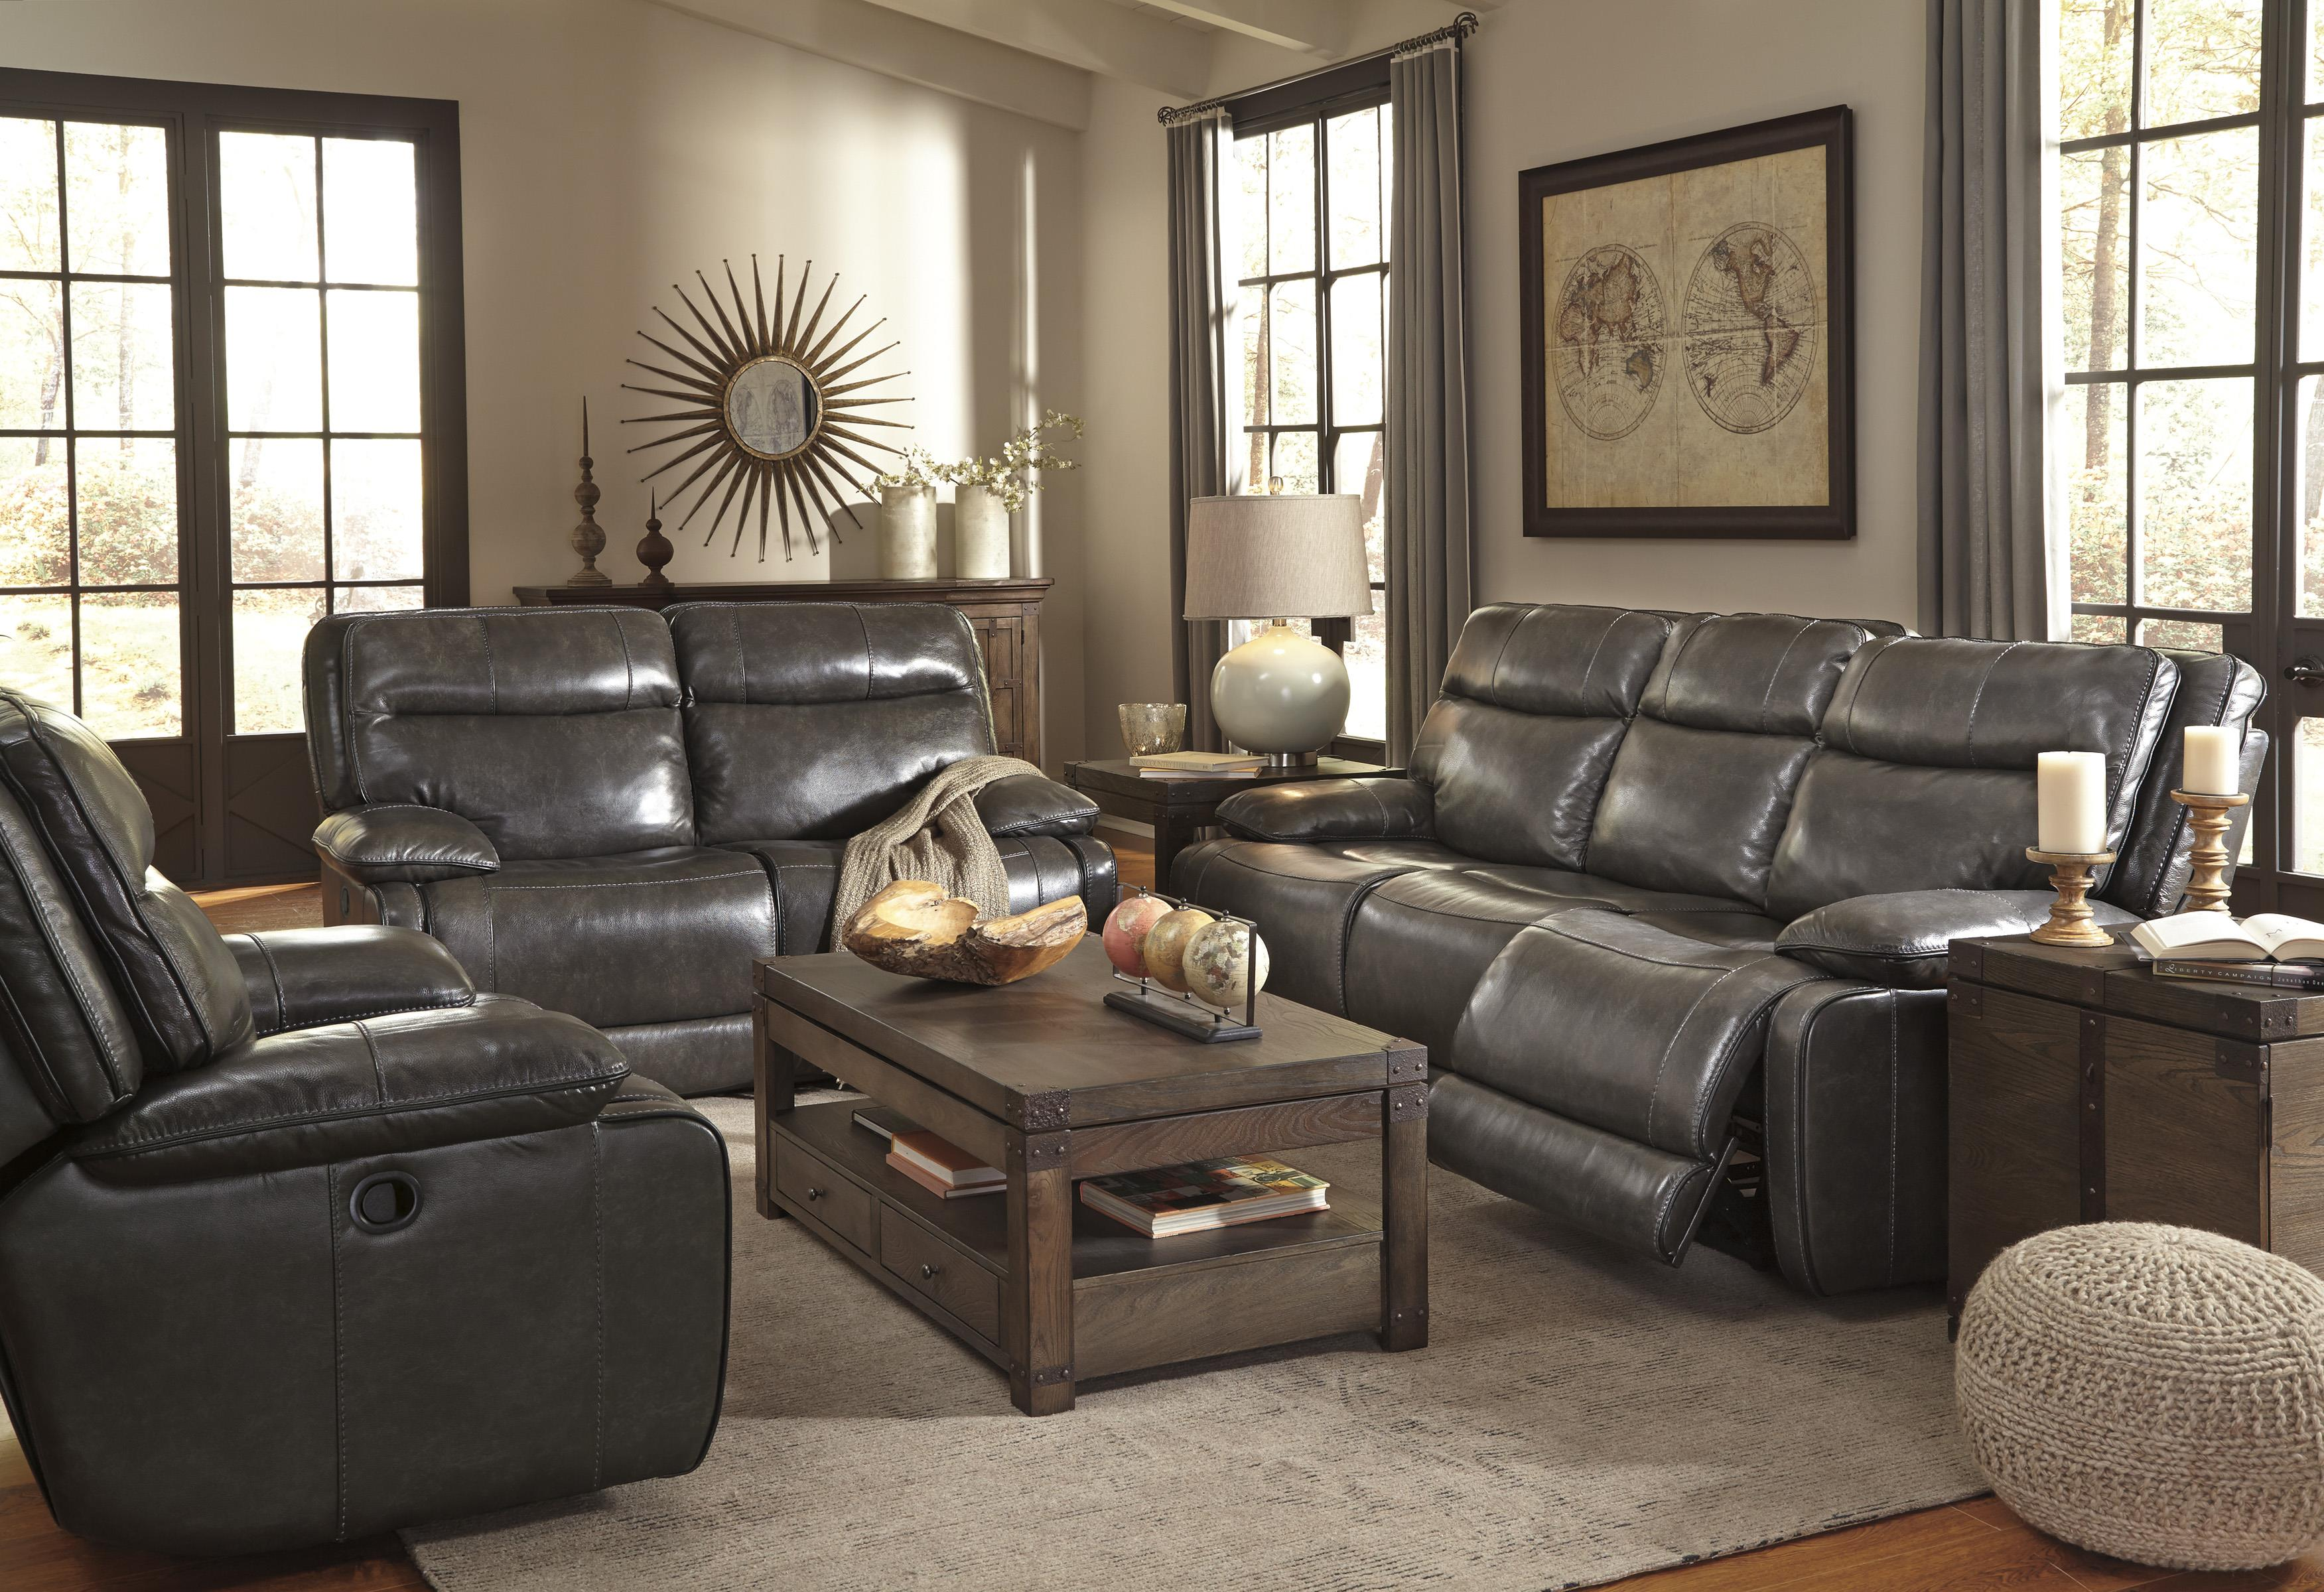 Signature Design by Ashley Palladum Reclining Living Room Group - Item Number: U72601 Living Room Group 3